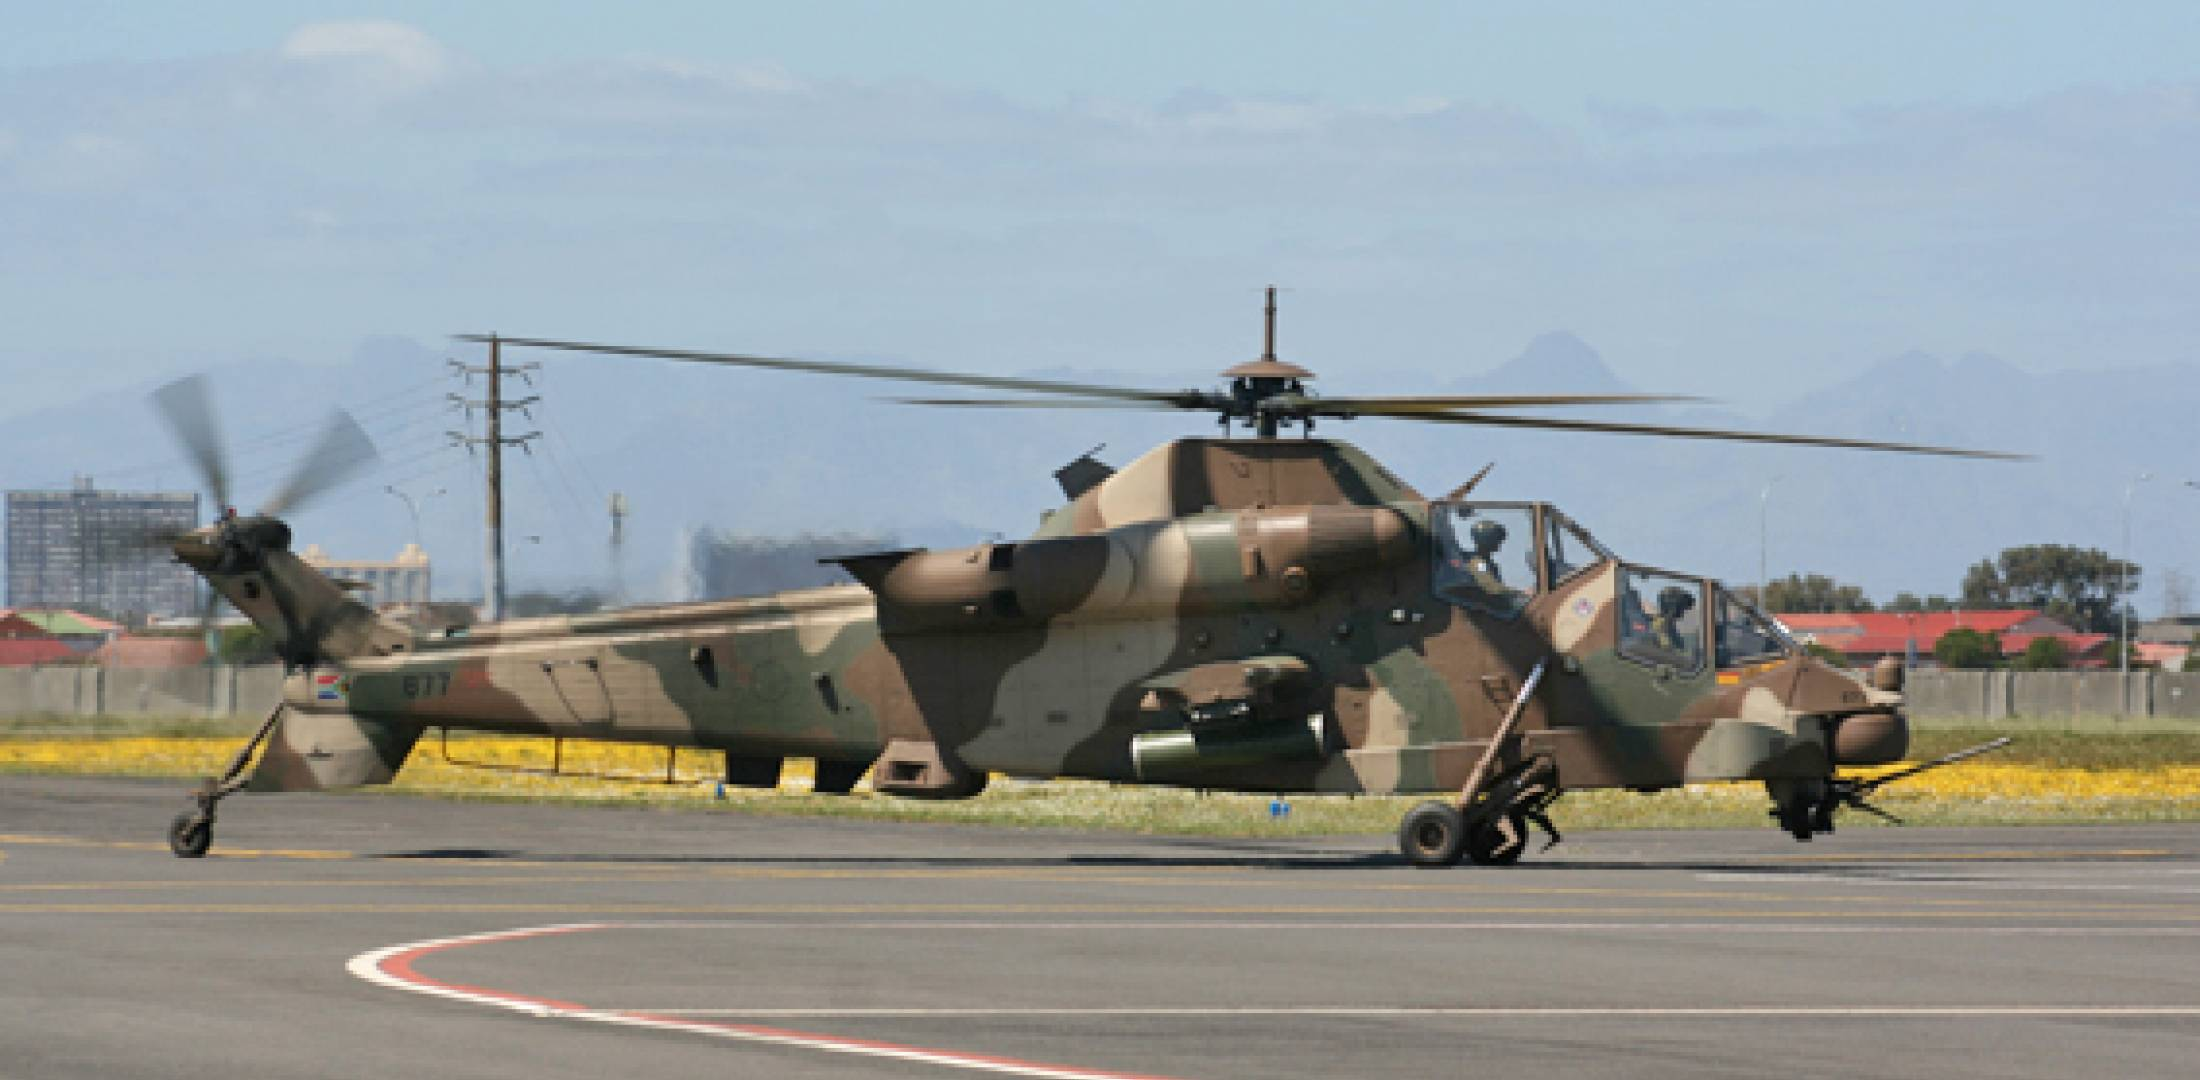 The South African Air Force last week took delivery of its first fully upgrad...